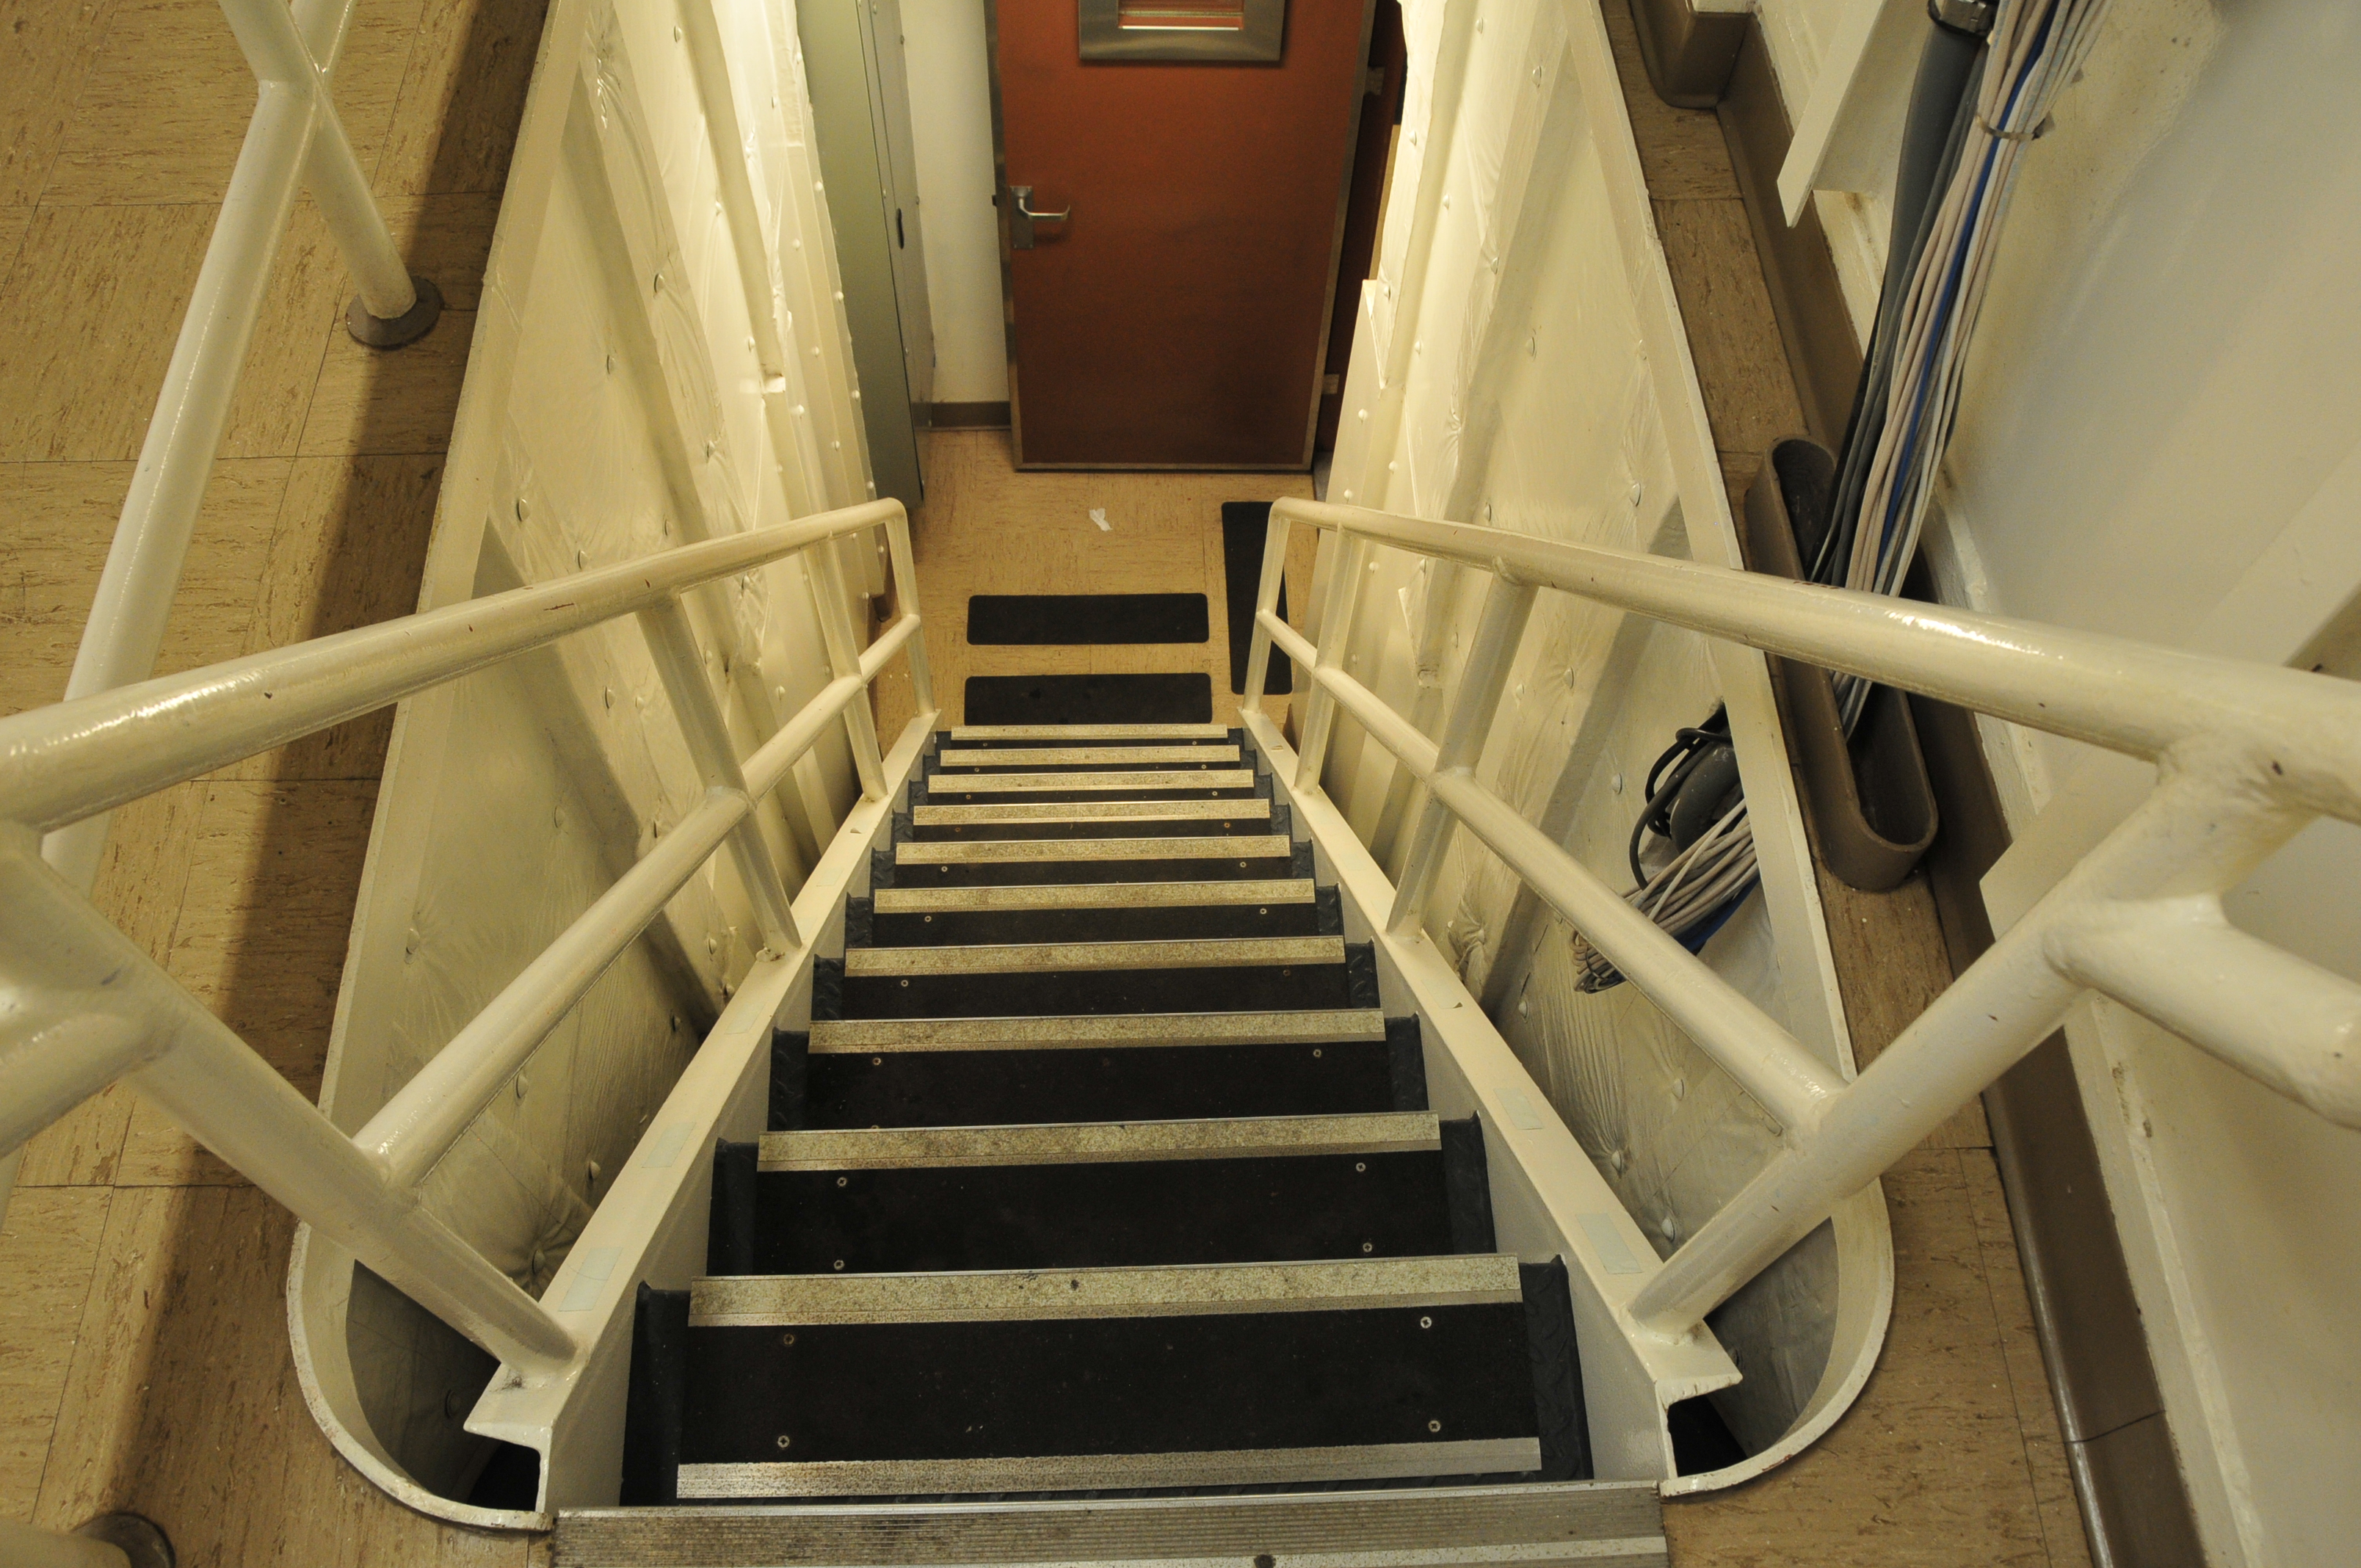 Looking Down Stairwell With White Railings And Black Steps. Steep Stairs